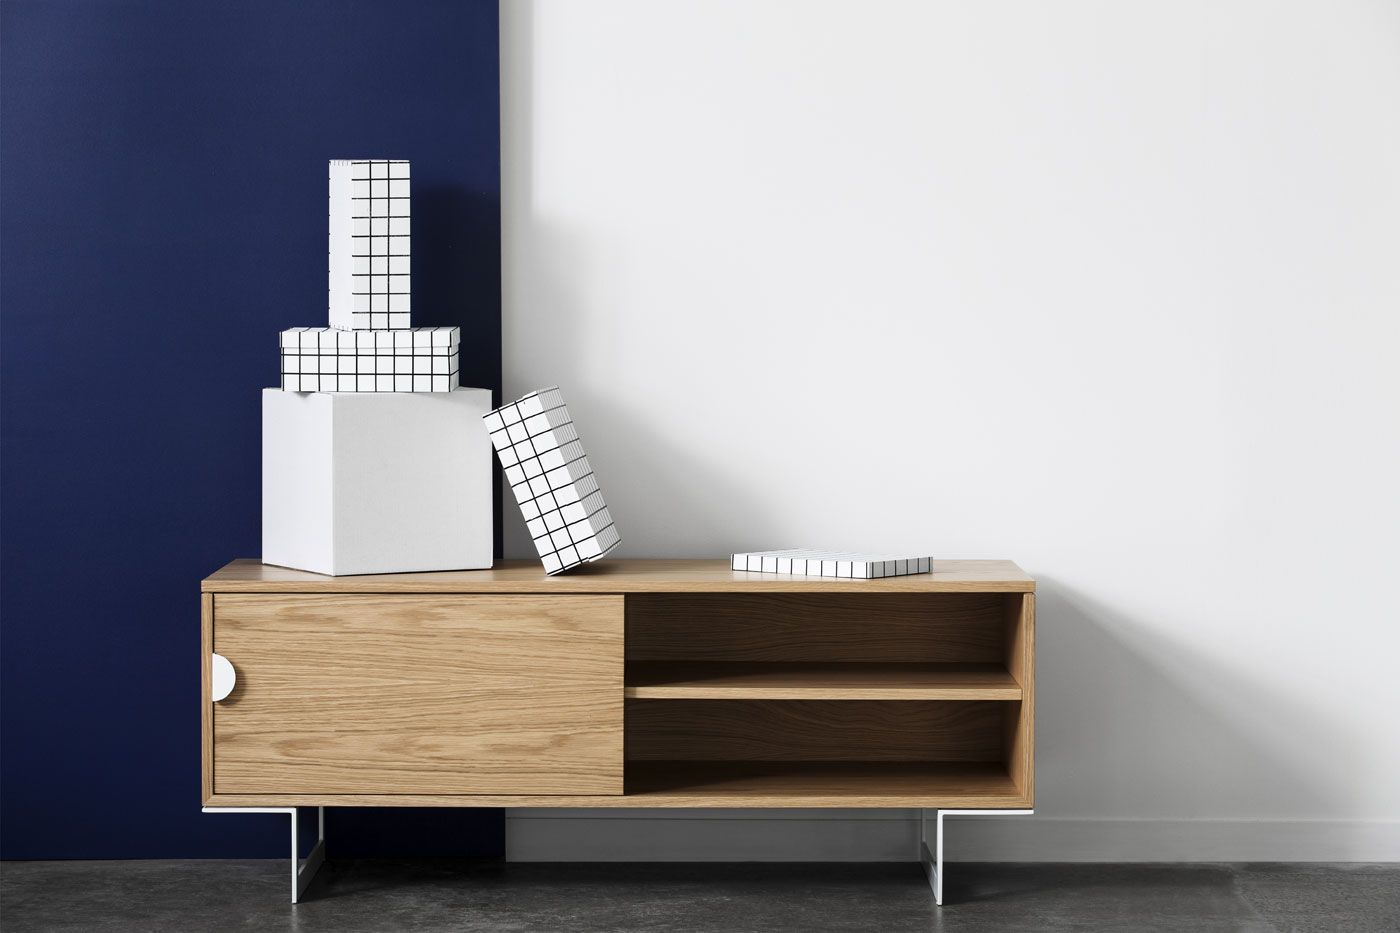 Anaca Studio's Collection Designed for Small Space Living